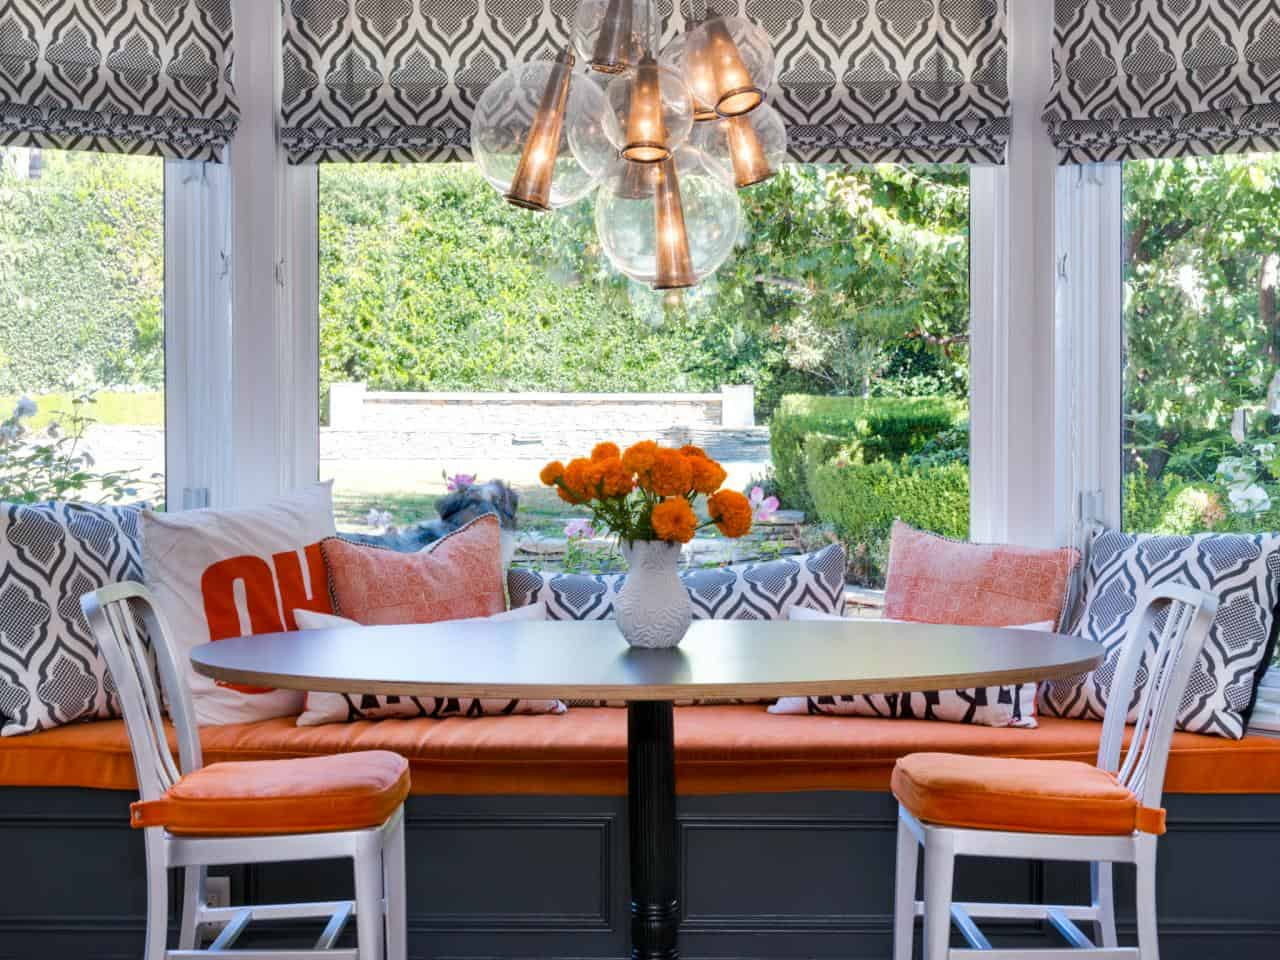 Colorful banquette table